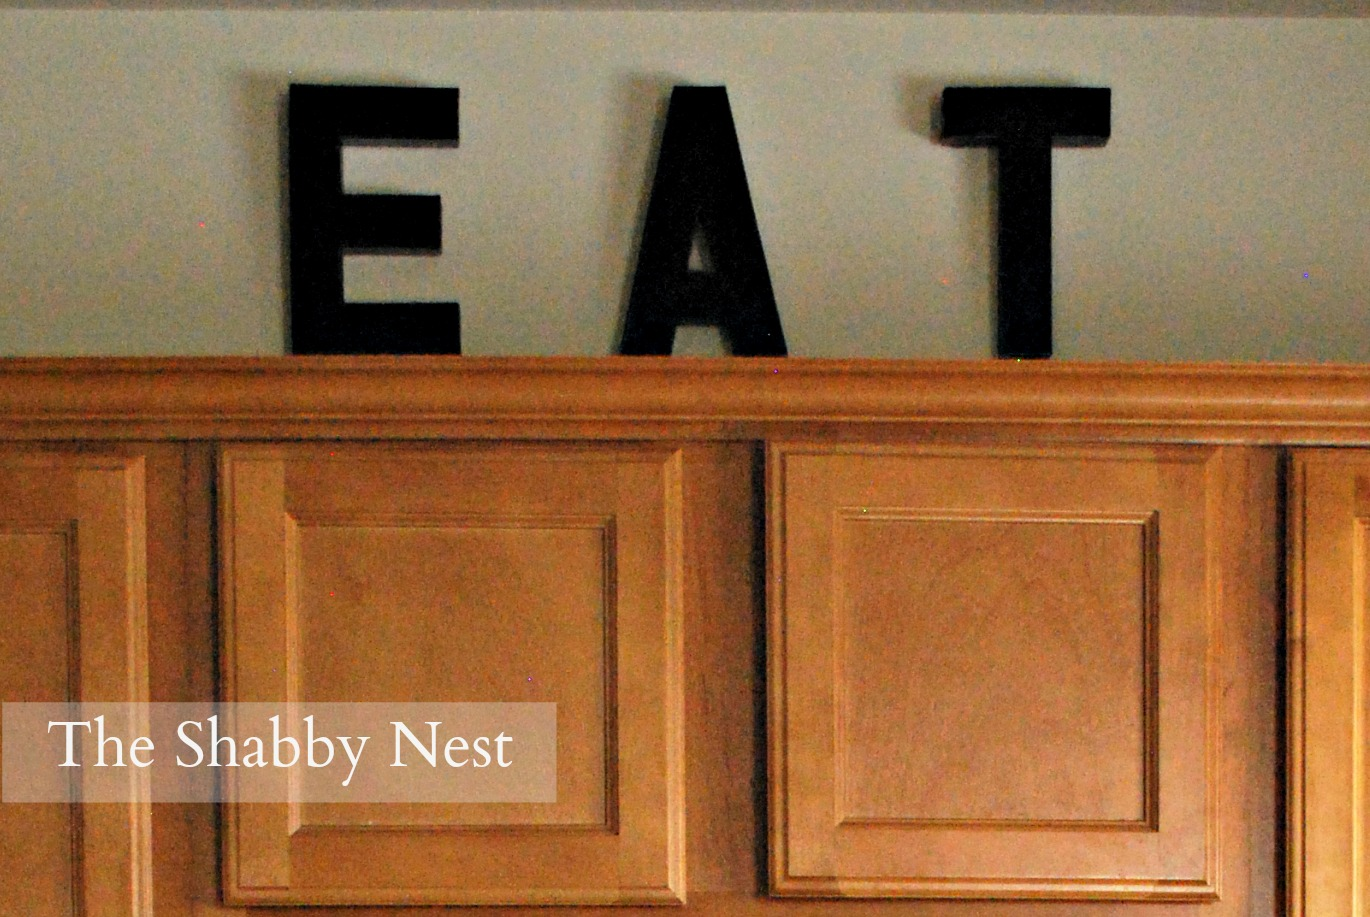 E A T: How I Created A Kitchen Focal Point Out Of Cardboard Letters~